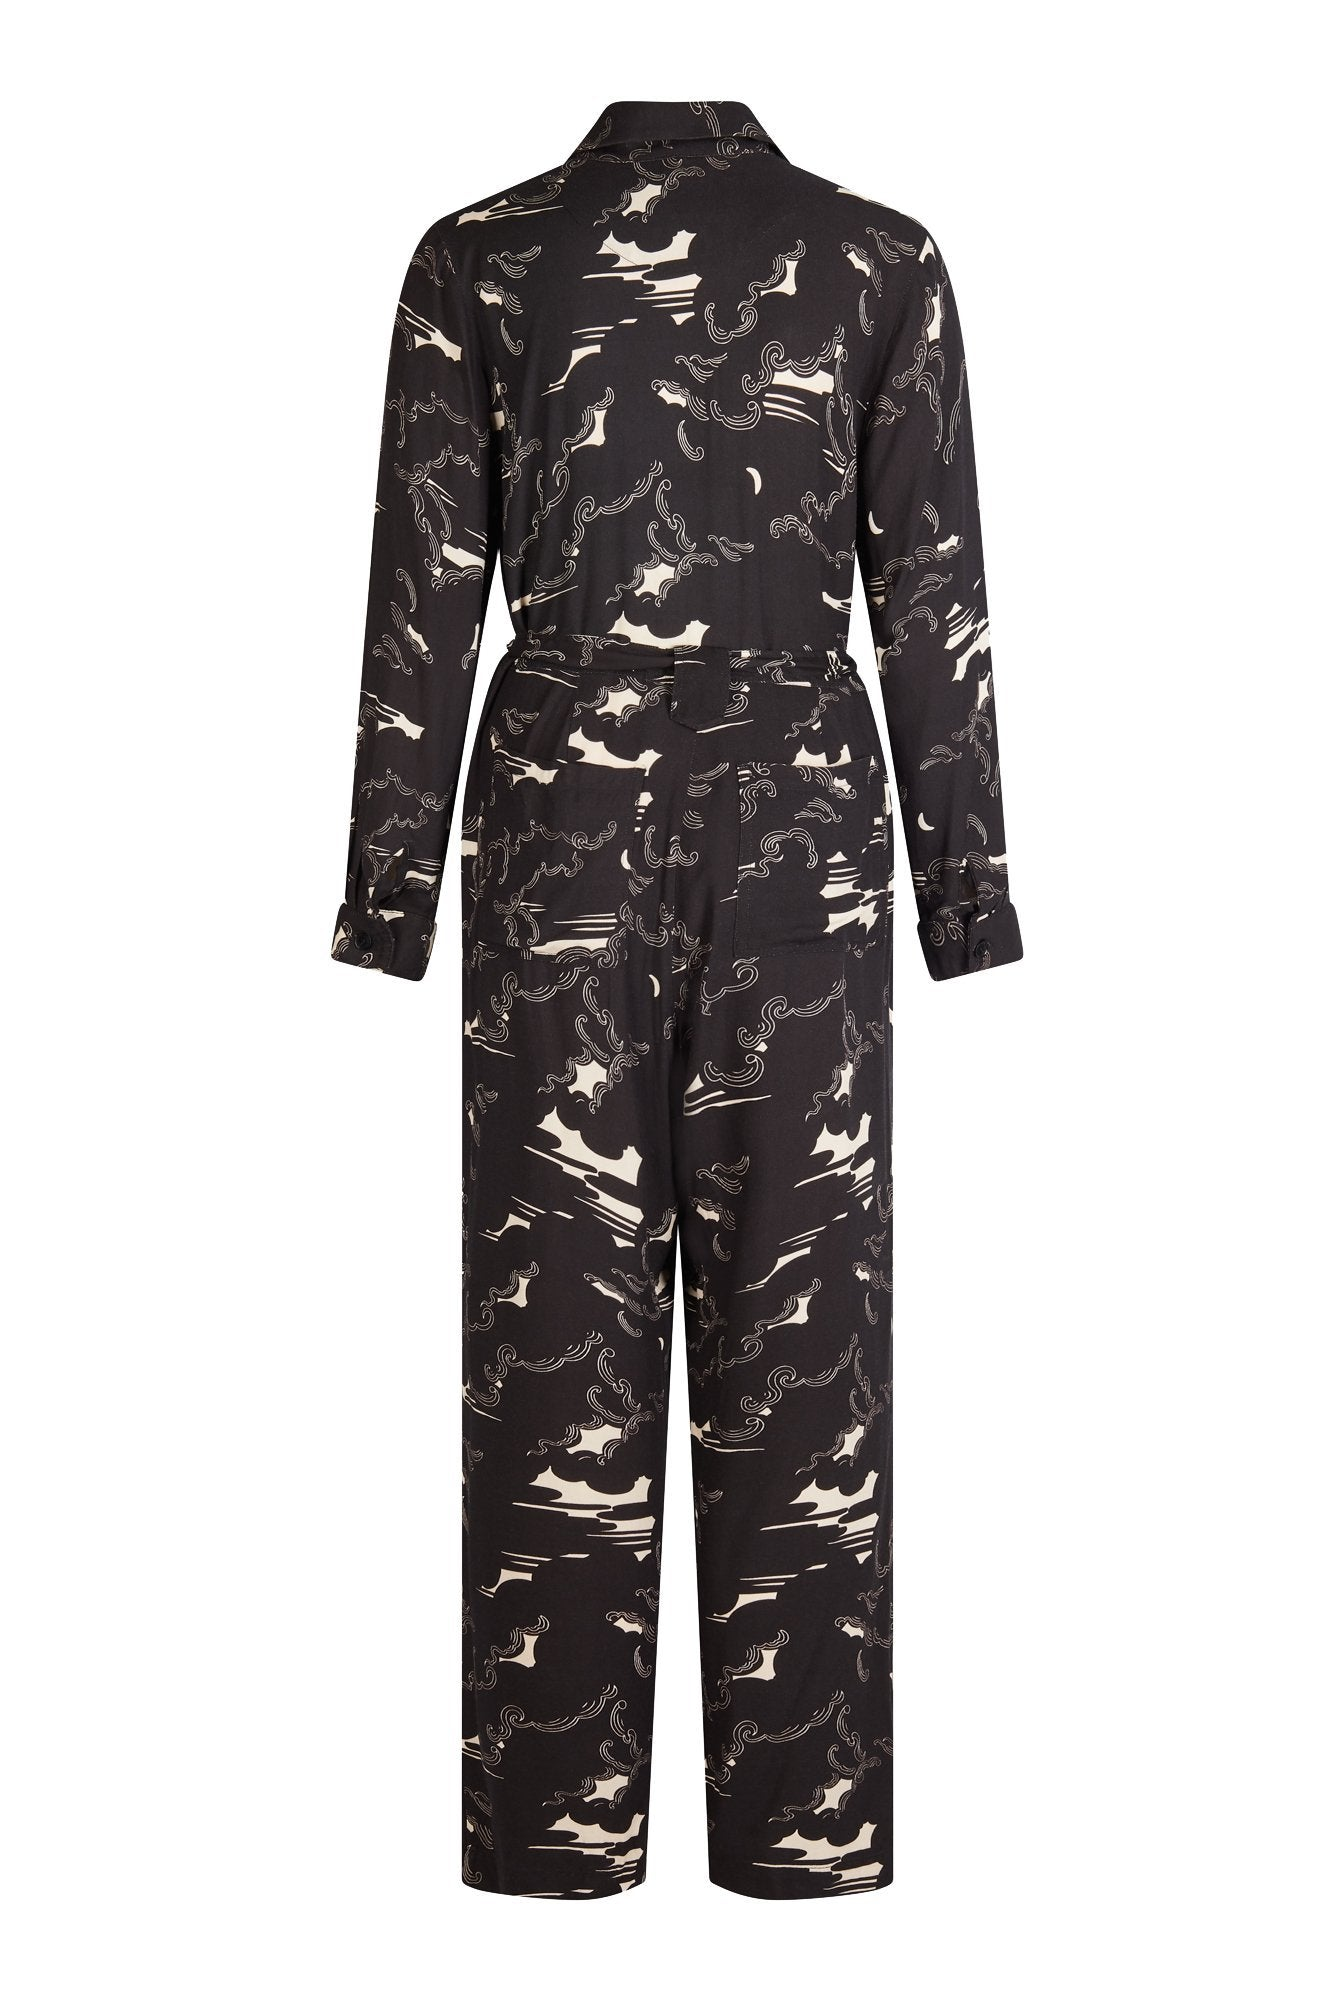 Shiva Jumpsuit by Komodo (Black)